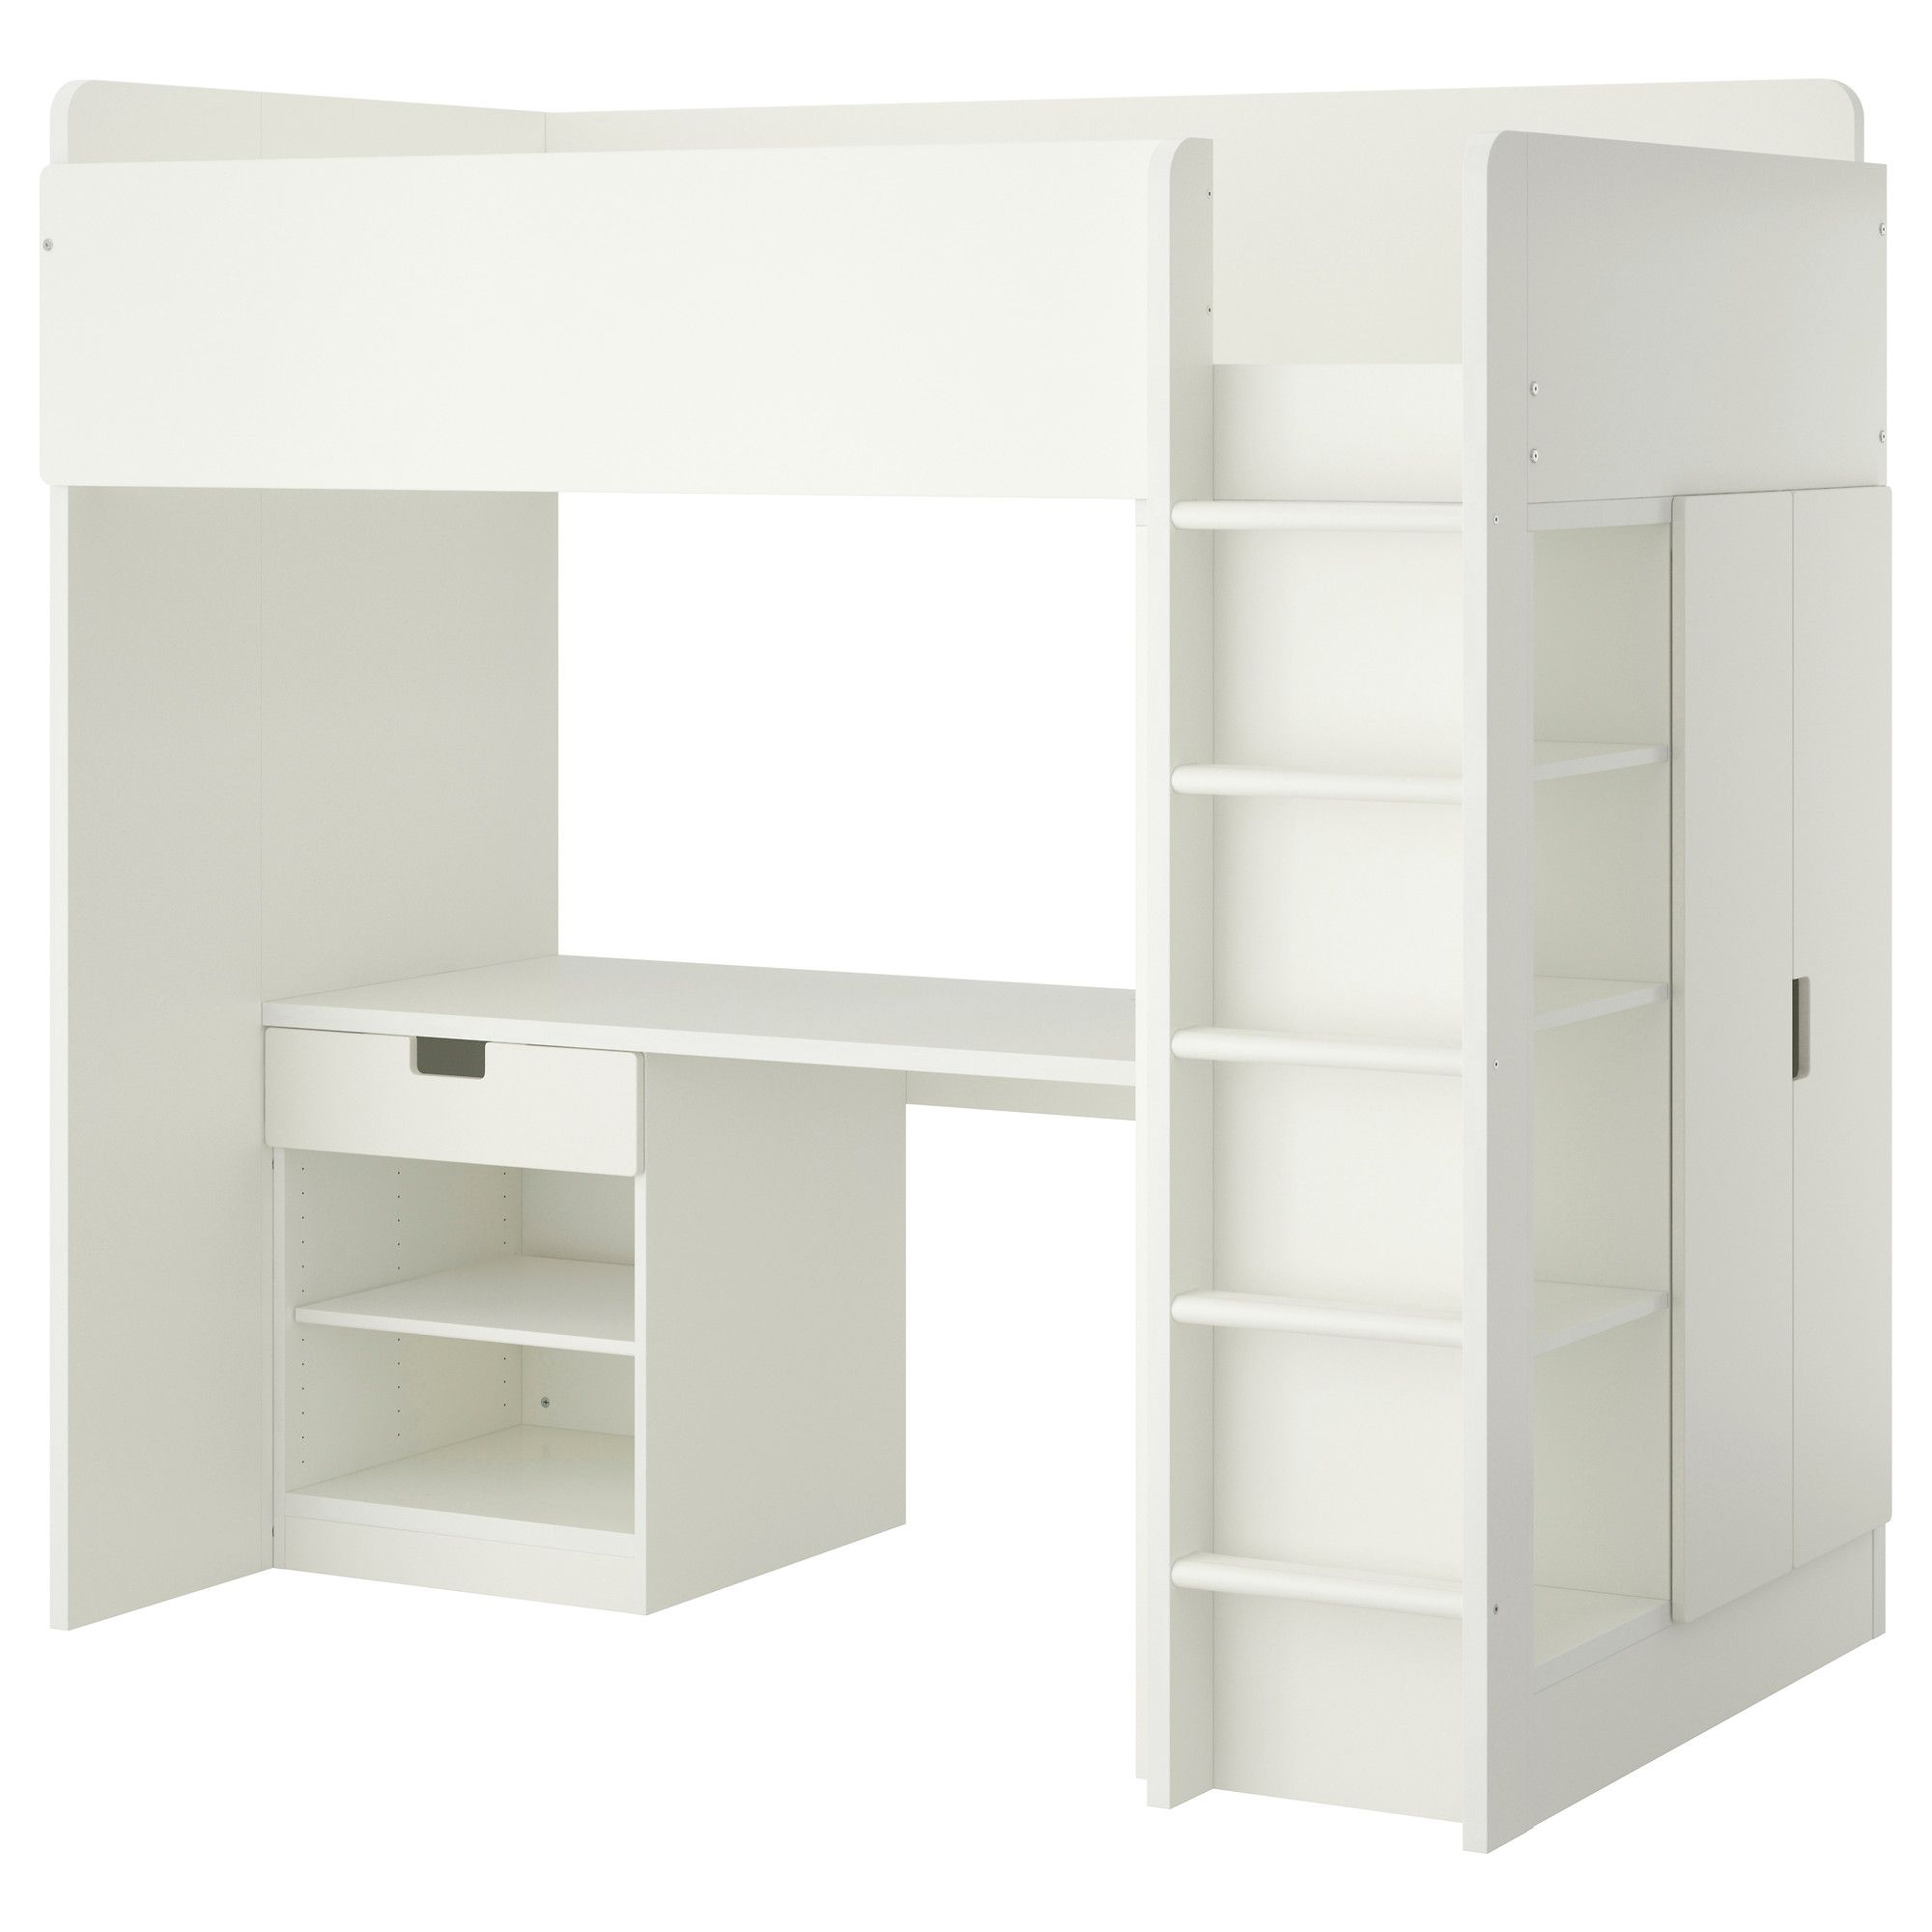 standing adjustable of height crank corner detail desk small stand white ergonomic up full drawer frame system size with hutch manual vivo drawers